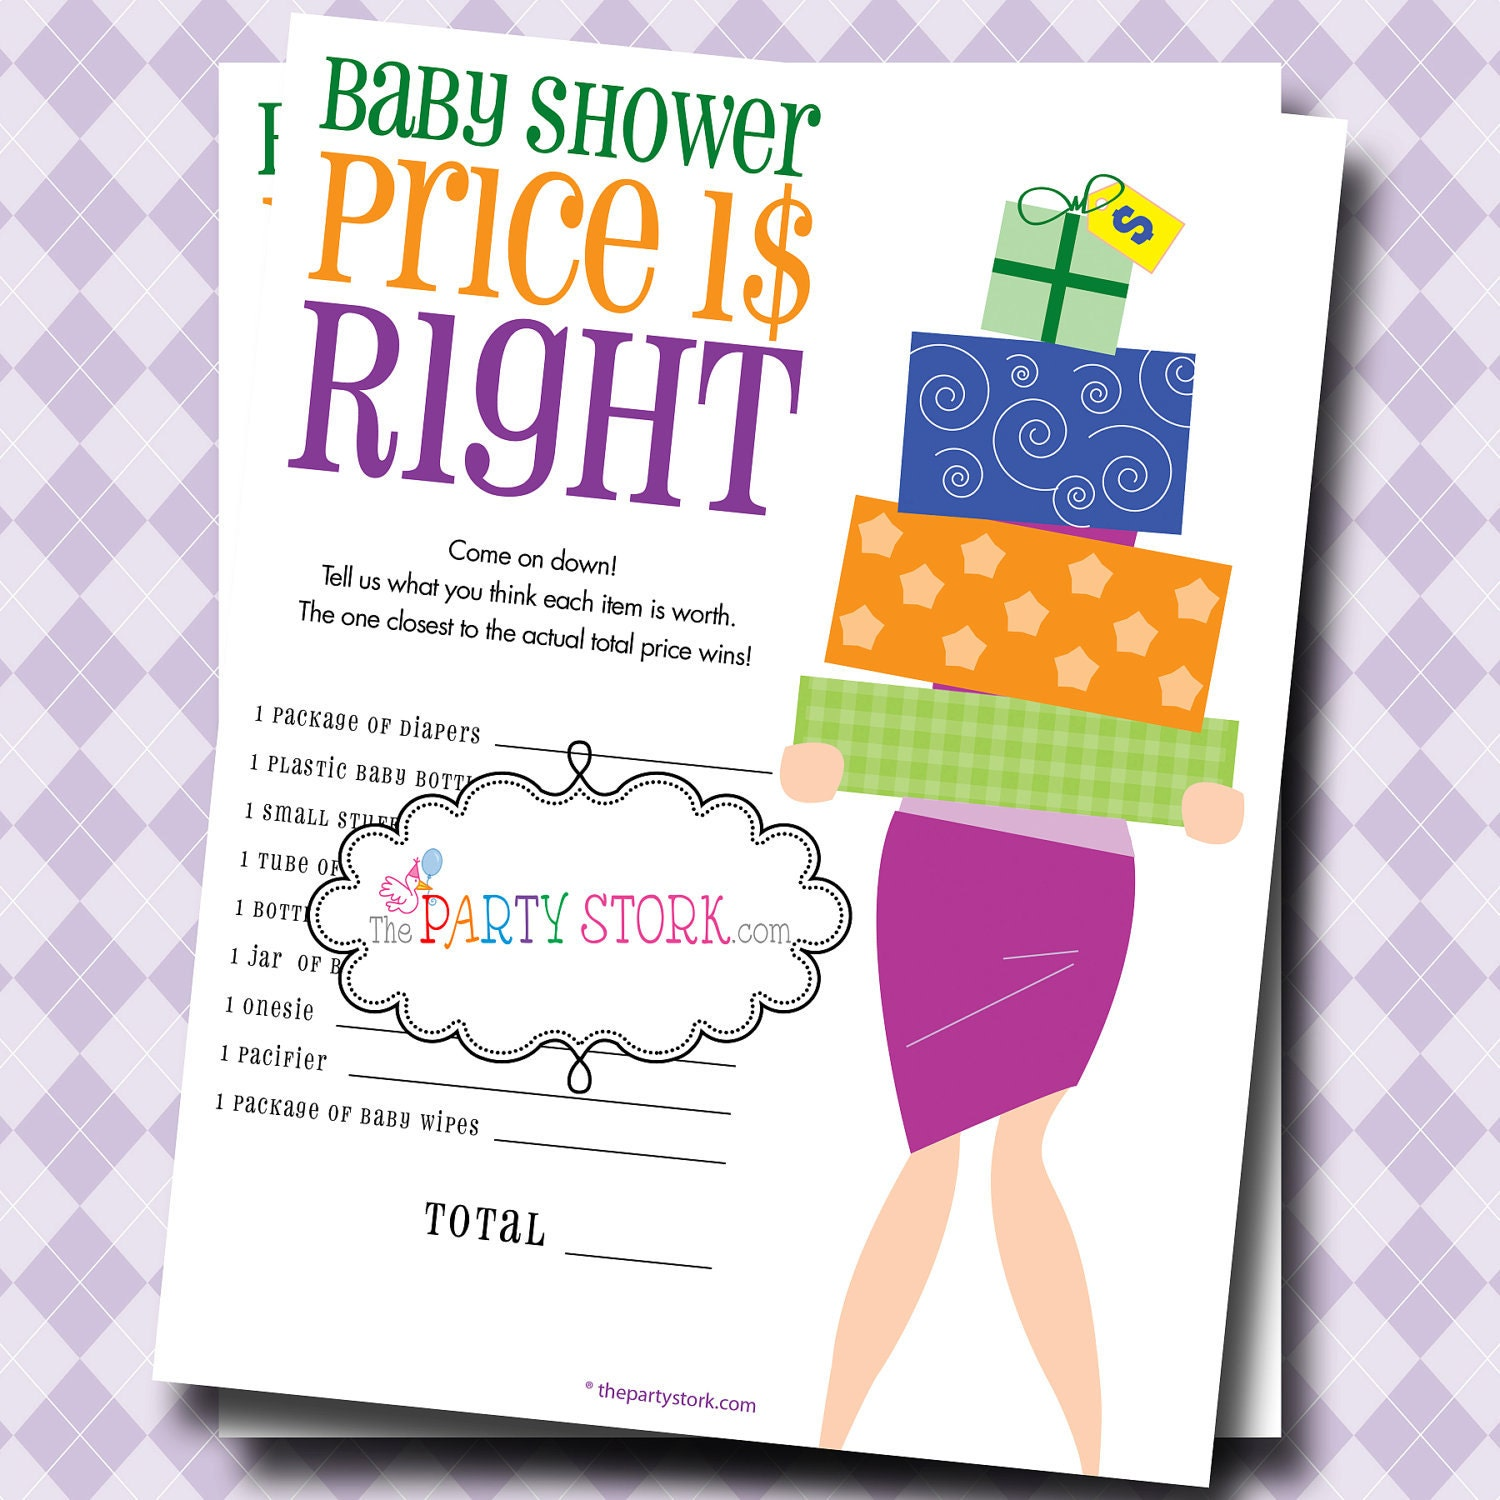 the price is right baby shower game customizeable items